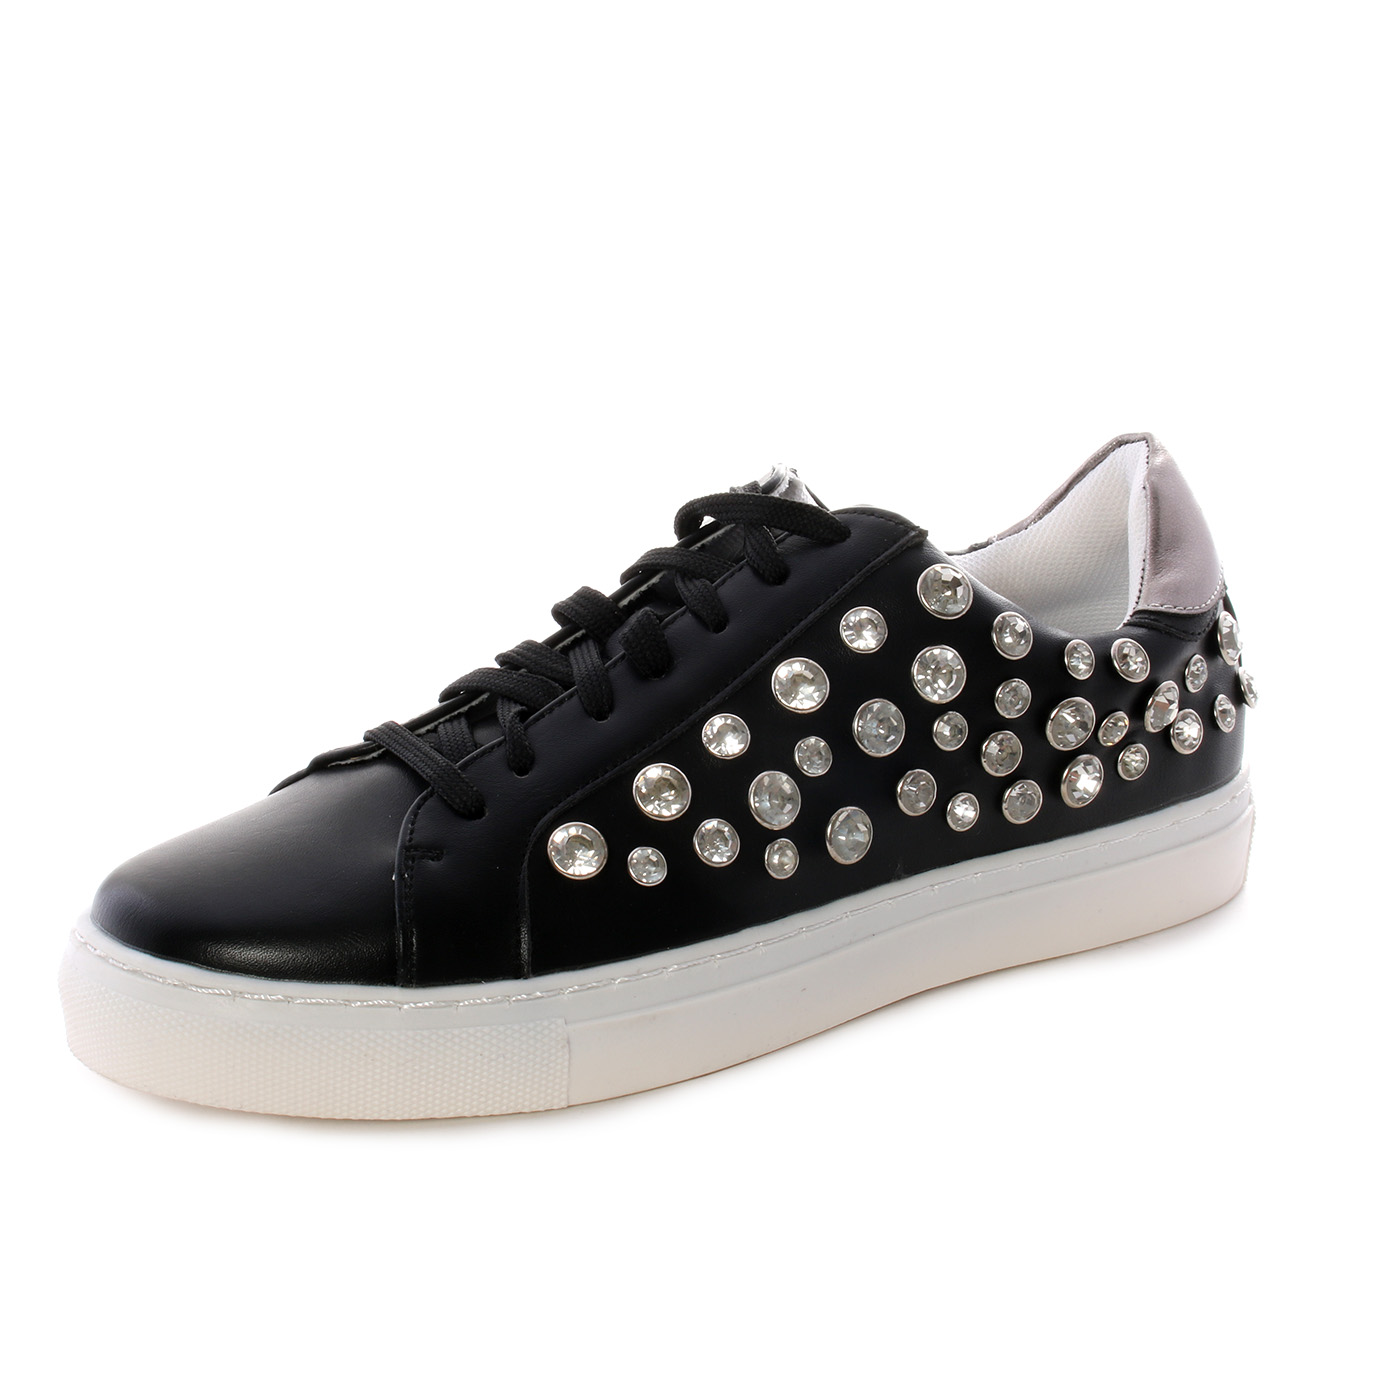 super popular d8cbd 94c1e Gavì - Sneakers da donna con brillantini - Nero